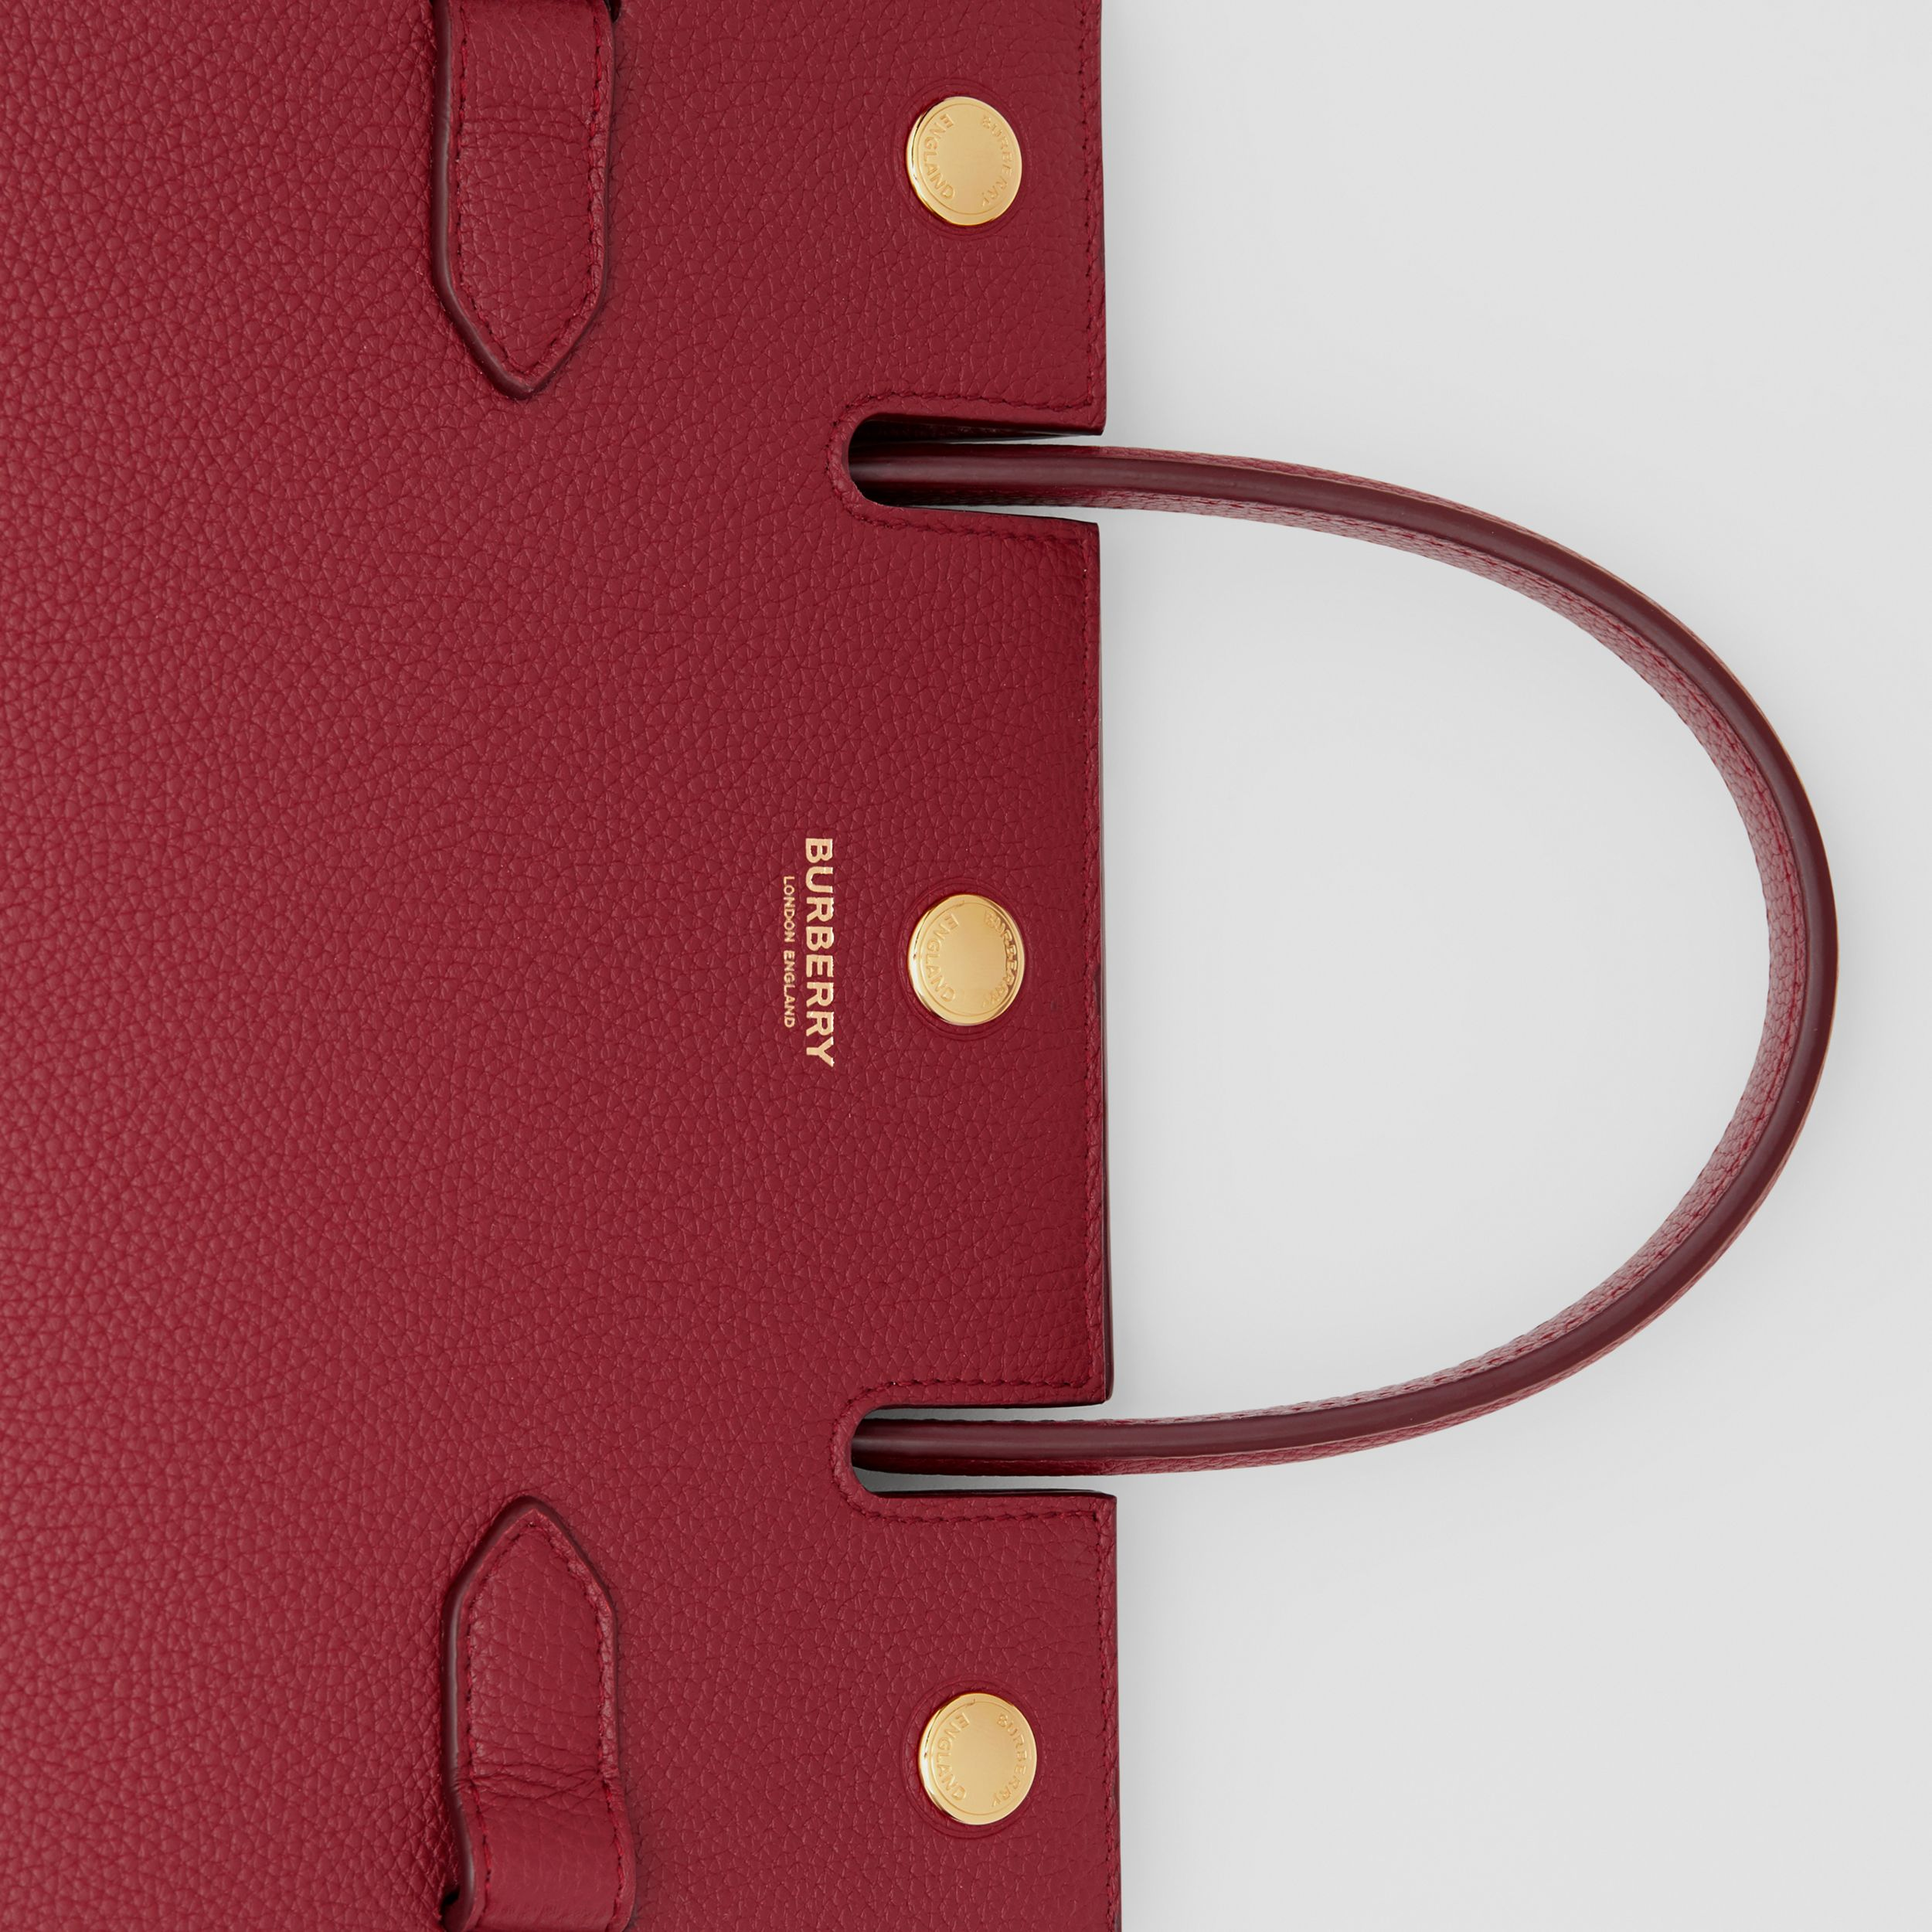 Mini Leather Title Bag in Dark Crimson - Women | Burberry Australia - 2